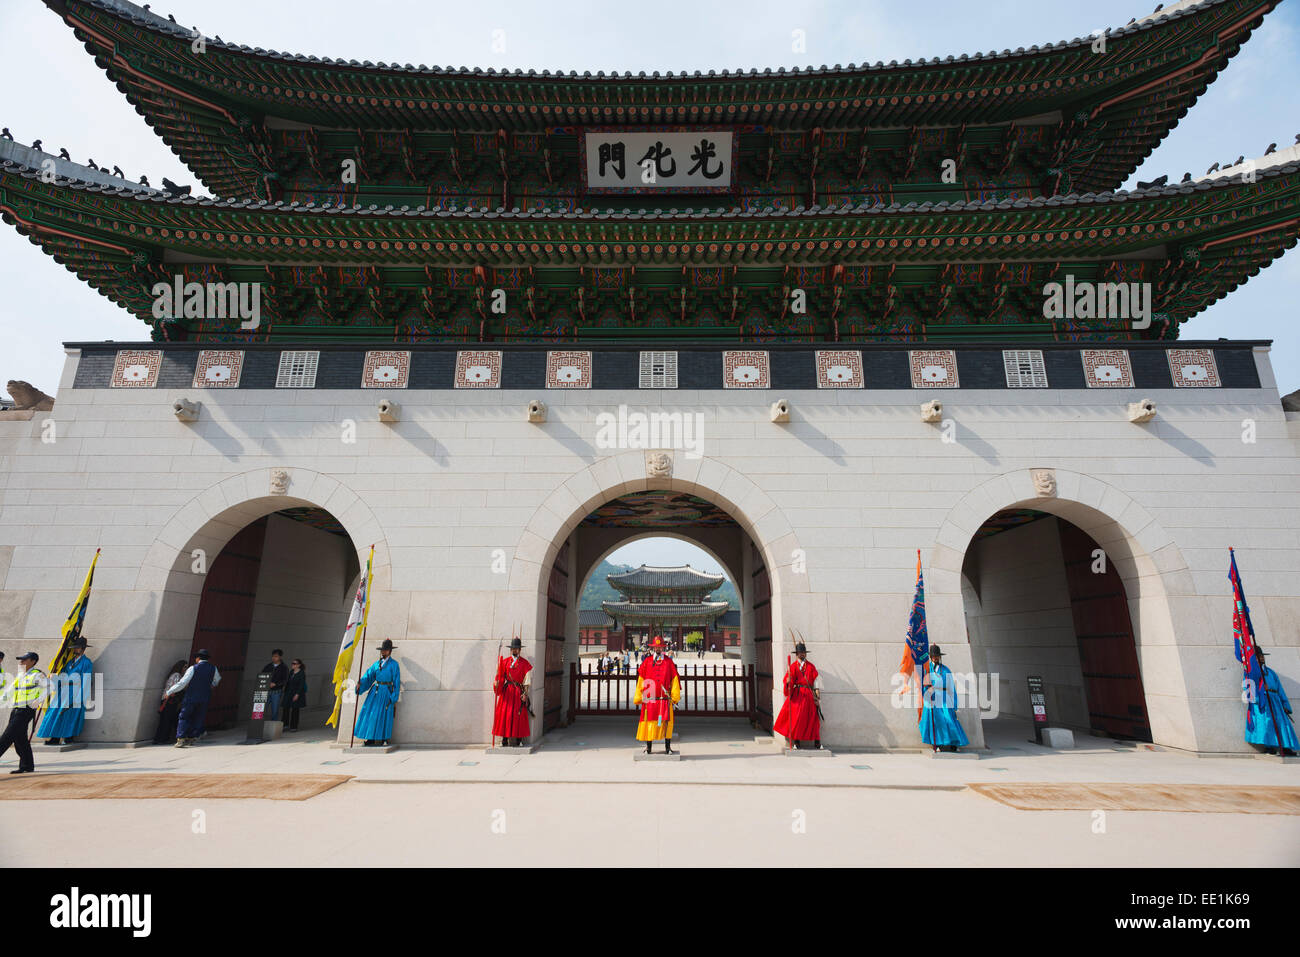 Changing of the guards ceremony, Gyeongbokgung Palace, Seoul, South Korea, Asia - Stock Image